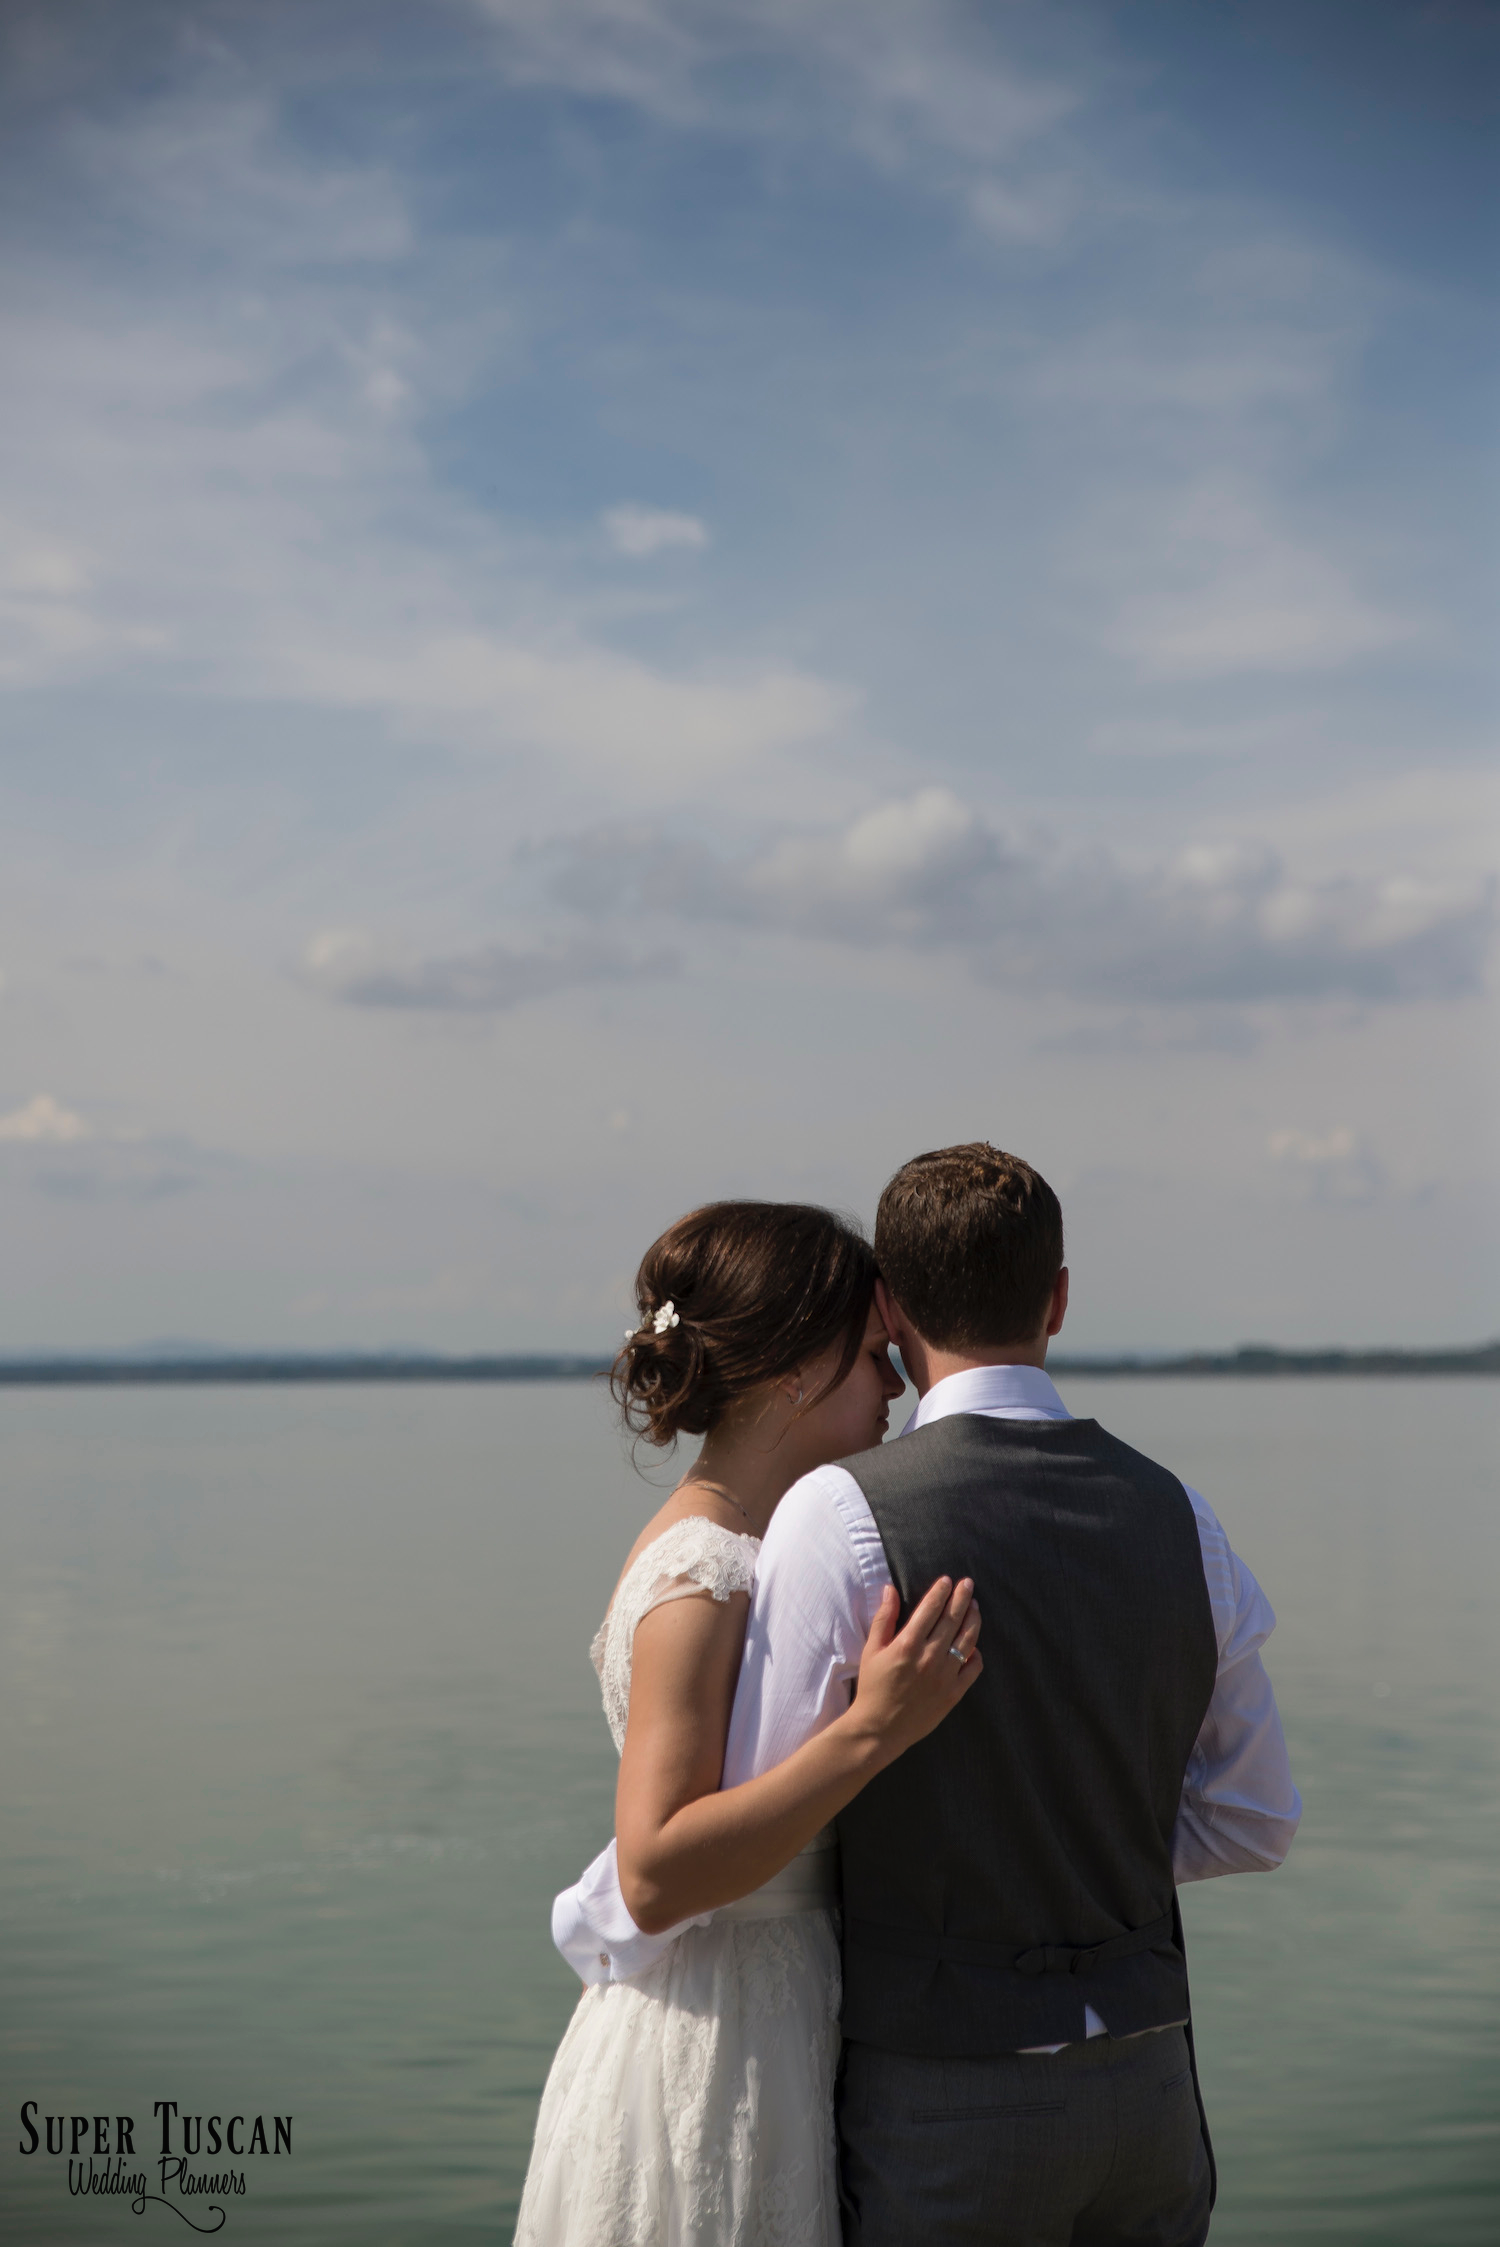 46Wedding on Trasimeno Lake - Umbria